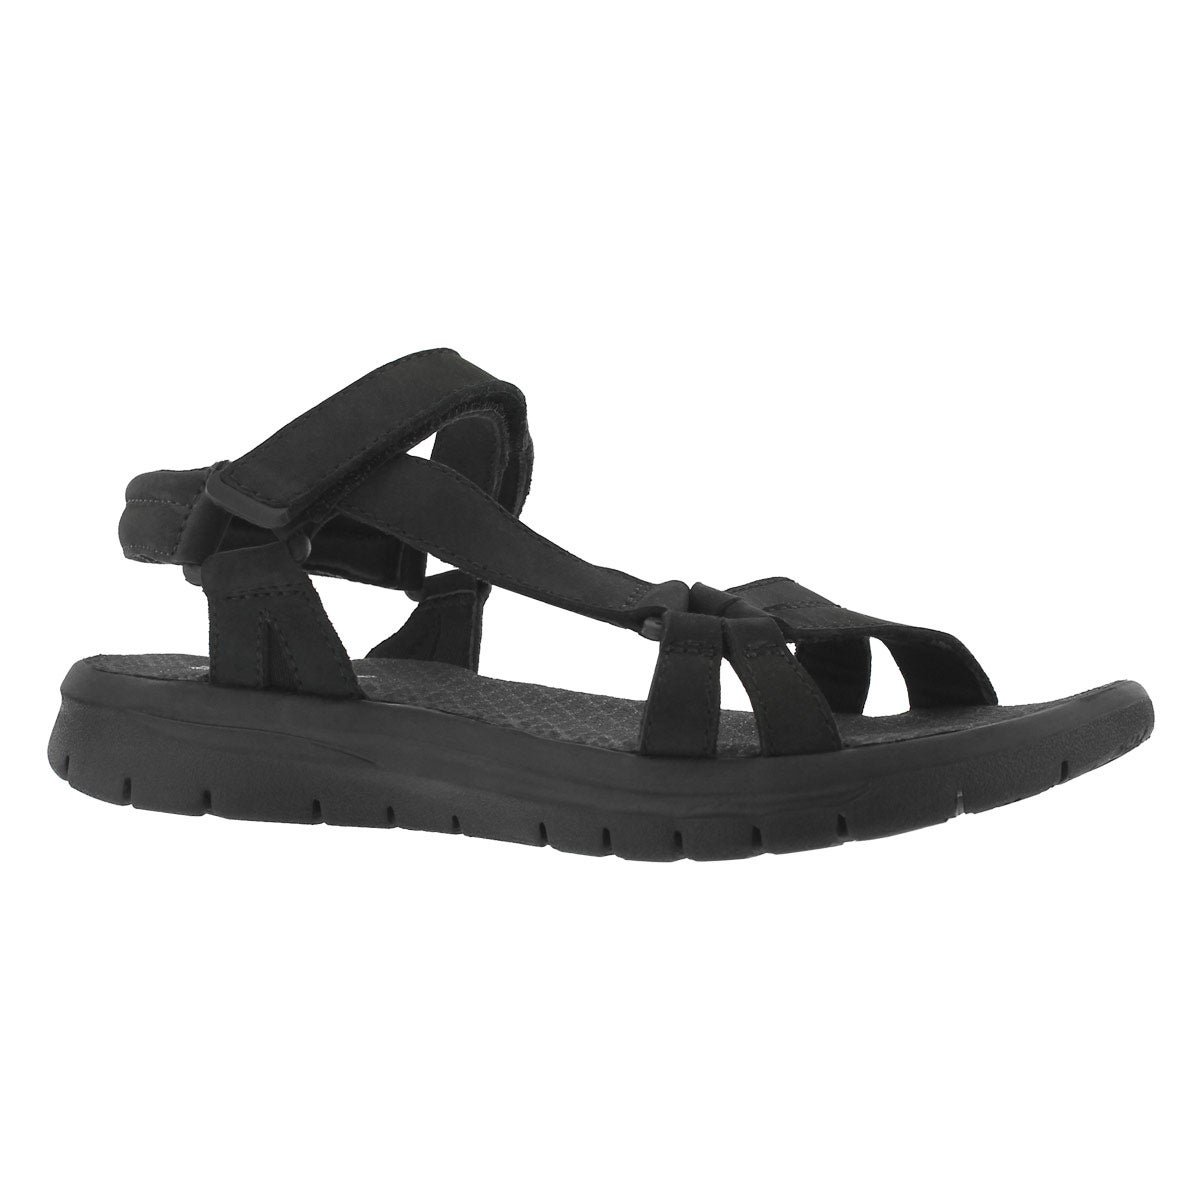 Women's CHRISSY black/black sport sandals